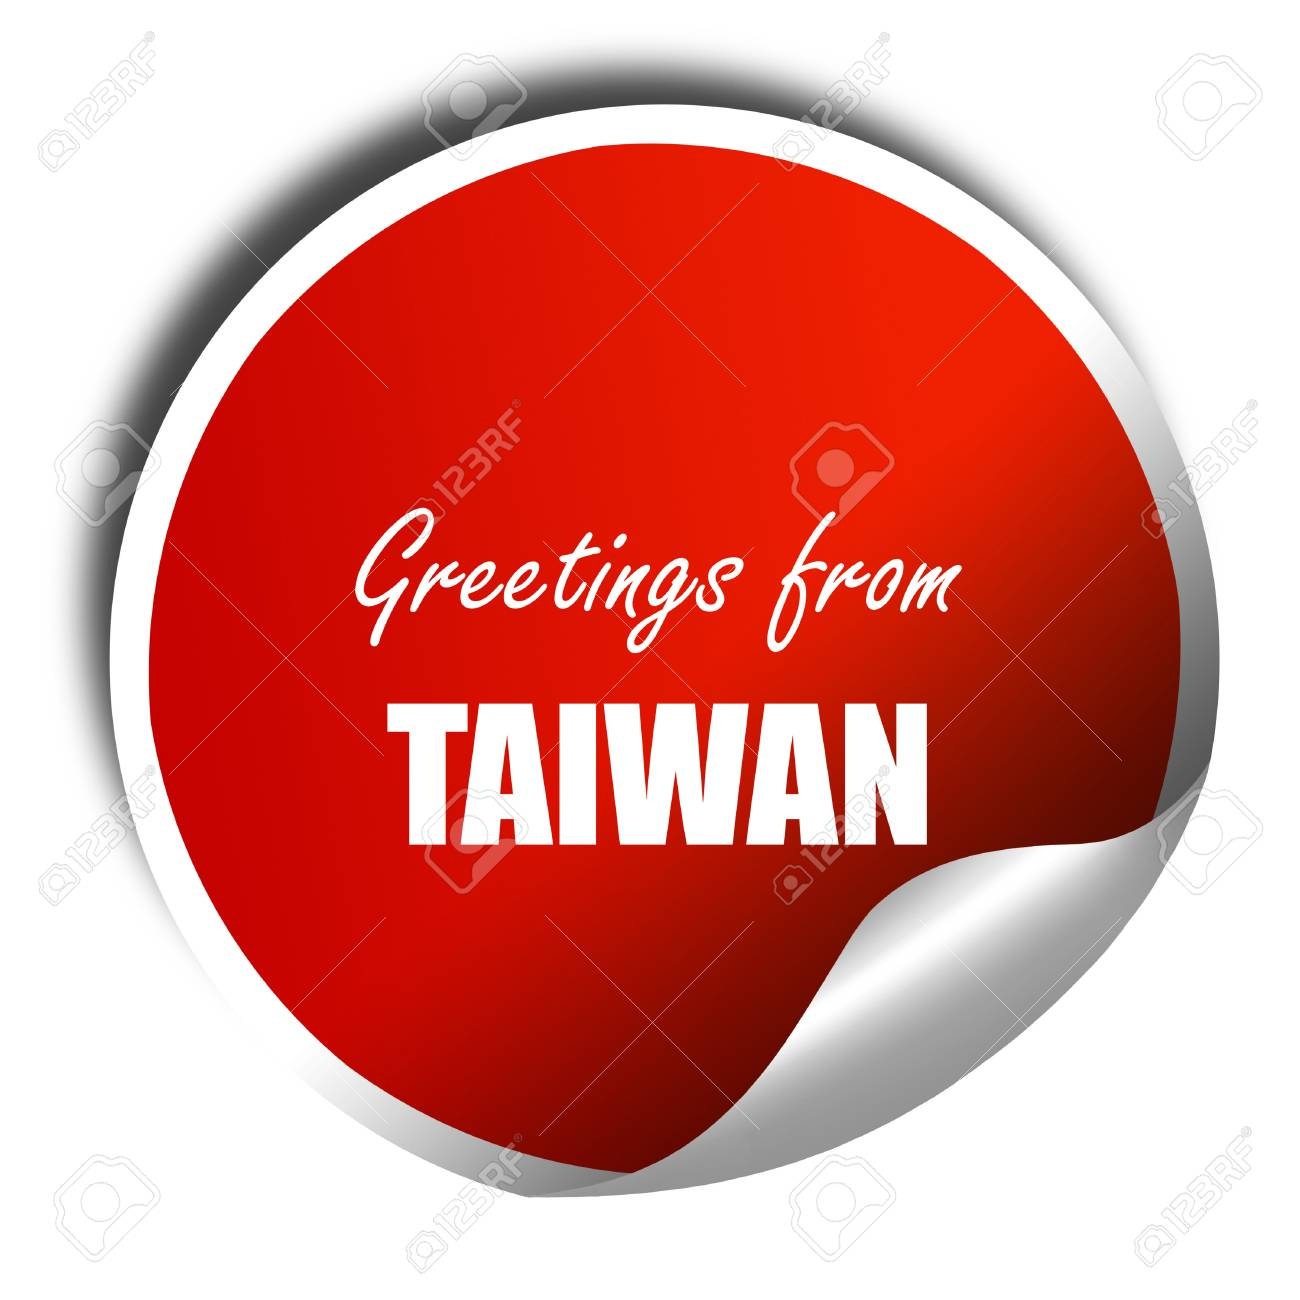 Greetings from taiwan card with some soft highlights 3d rendering greetings from taiwan card with some soft highlights 3d rendering red sticker with white m4hsunfo